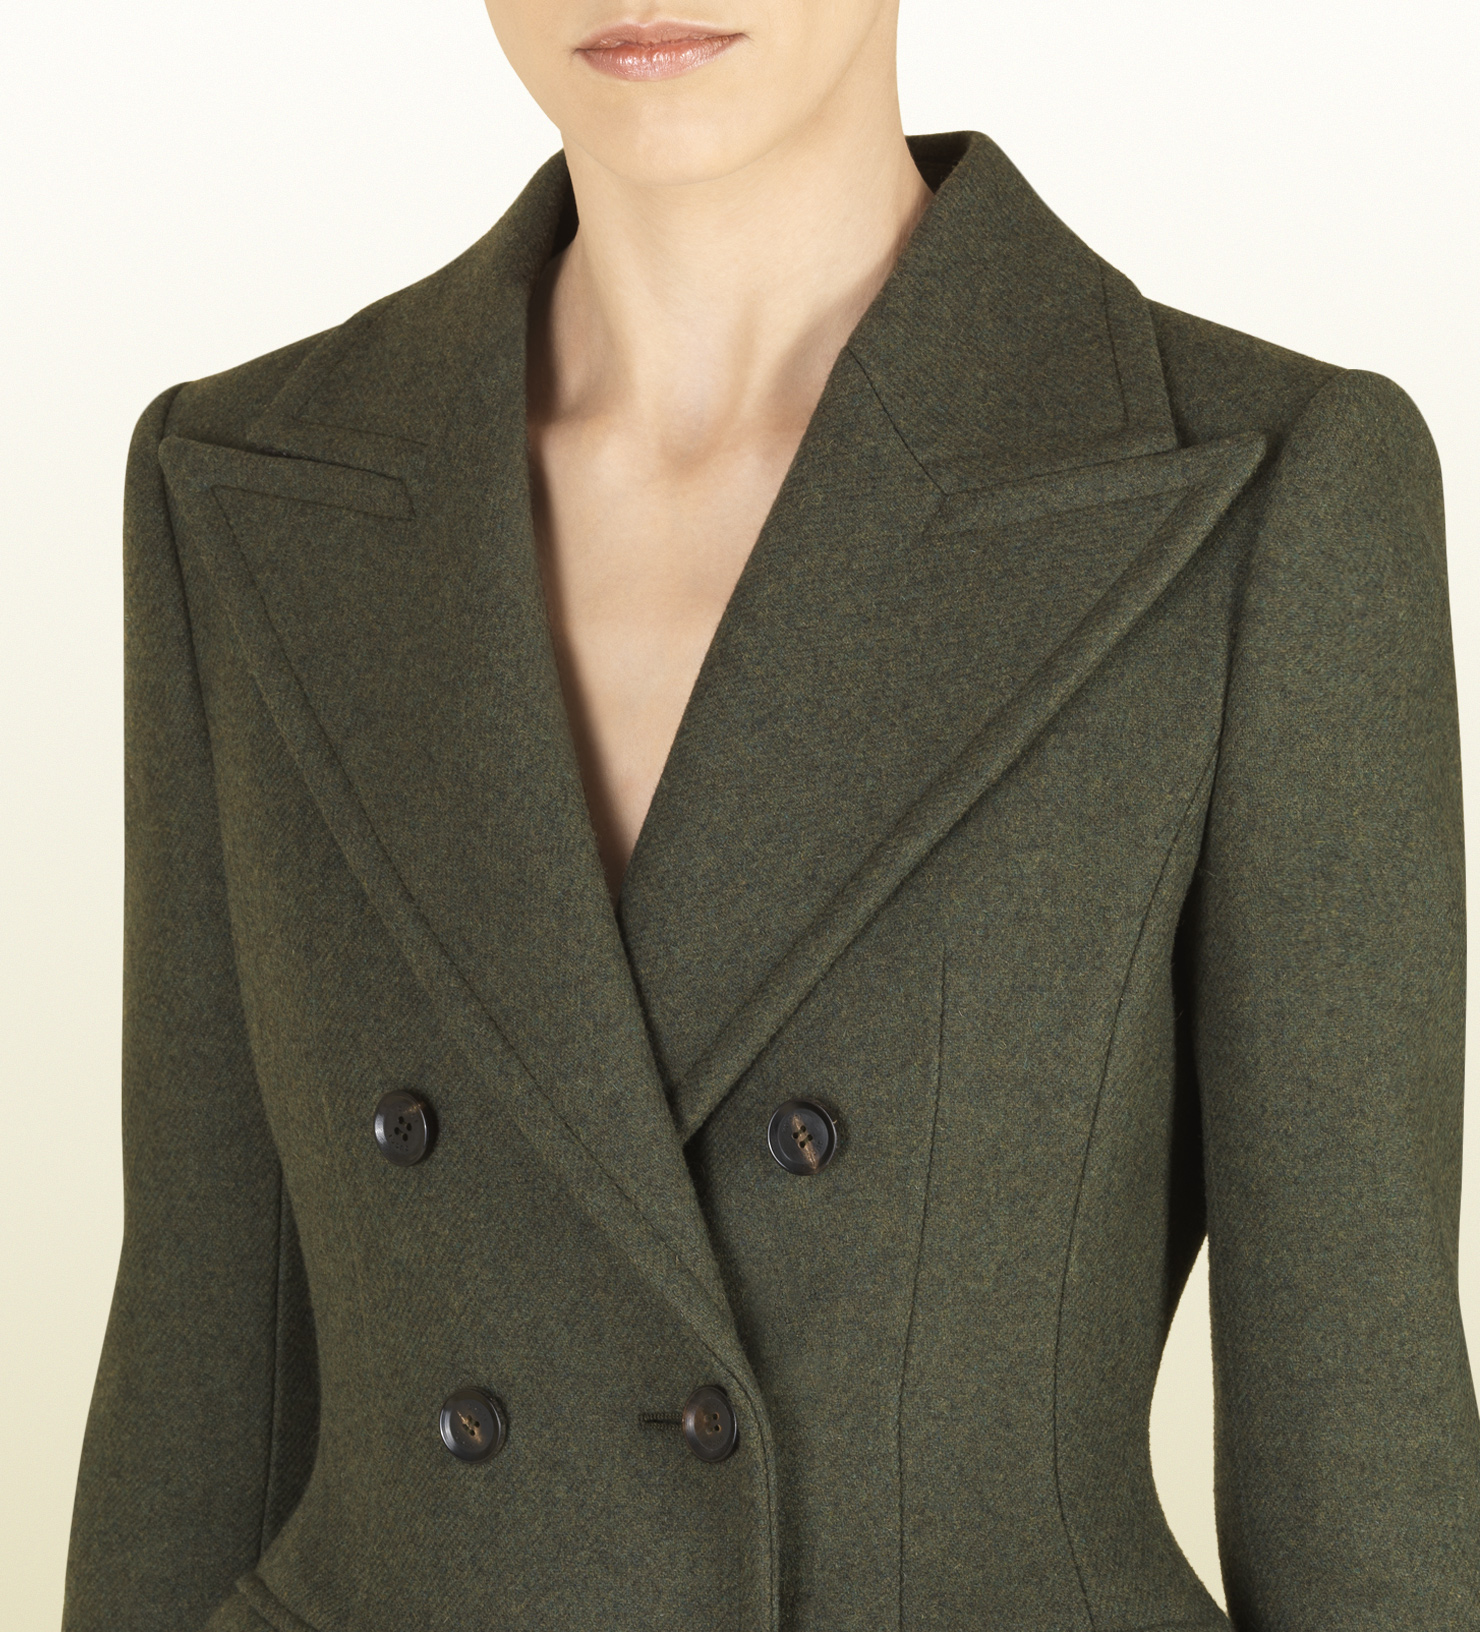 Gucci Military Green Wool Fitted Waist Coat in Green | Lyst